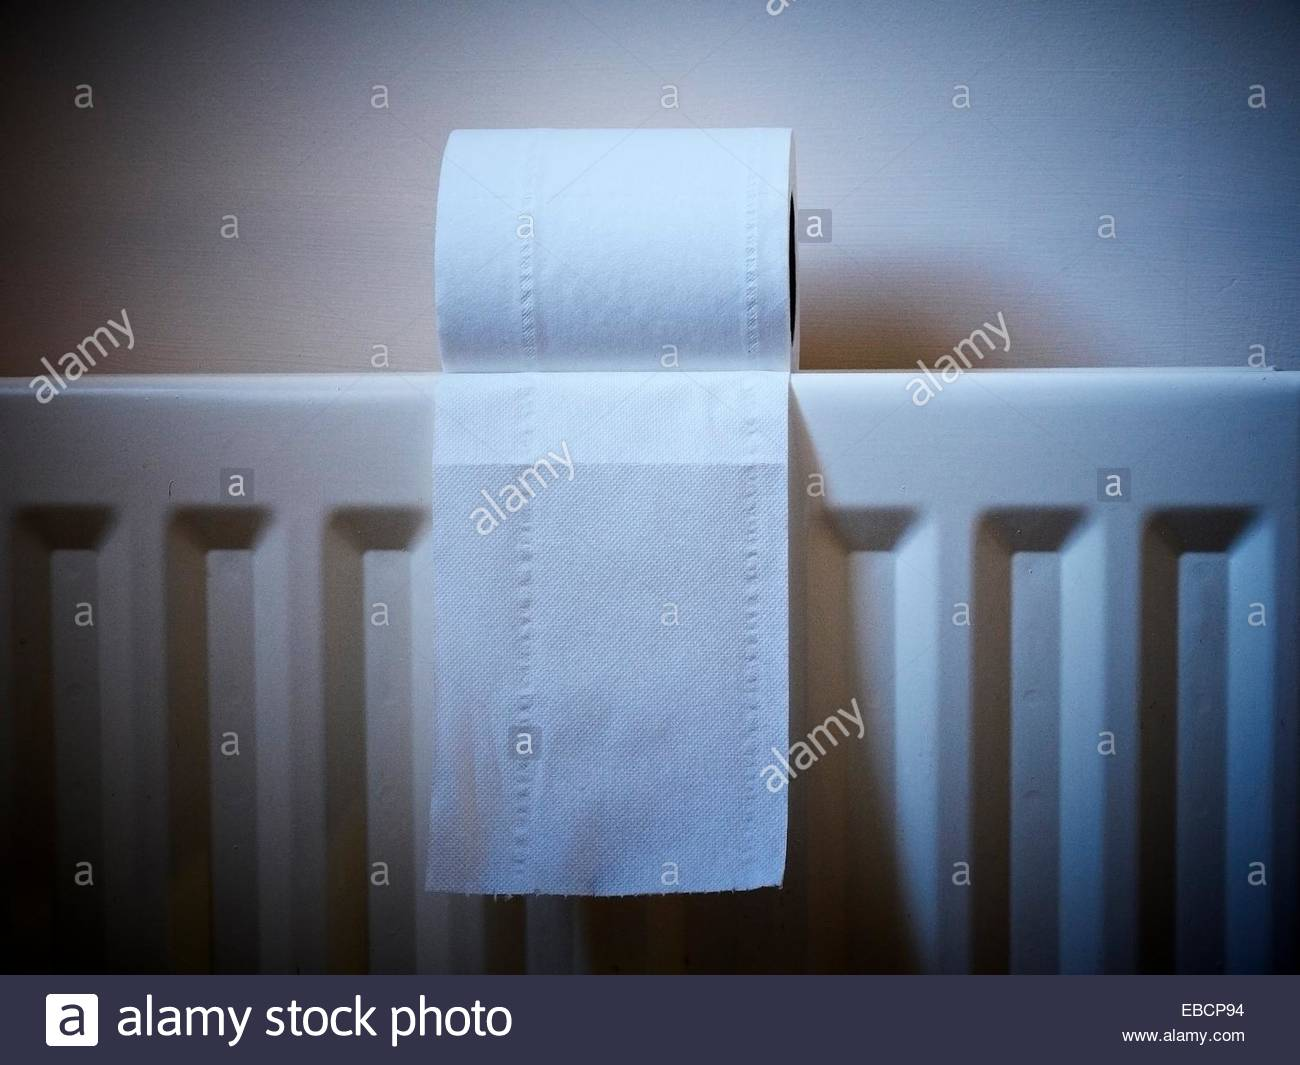 Radiator Voor Toilet : Close up of a toilet roll on radiator stock photo  alamy